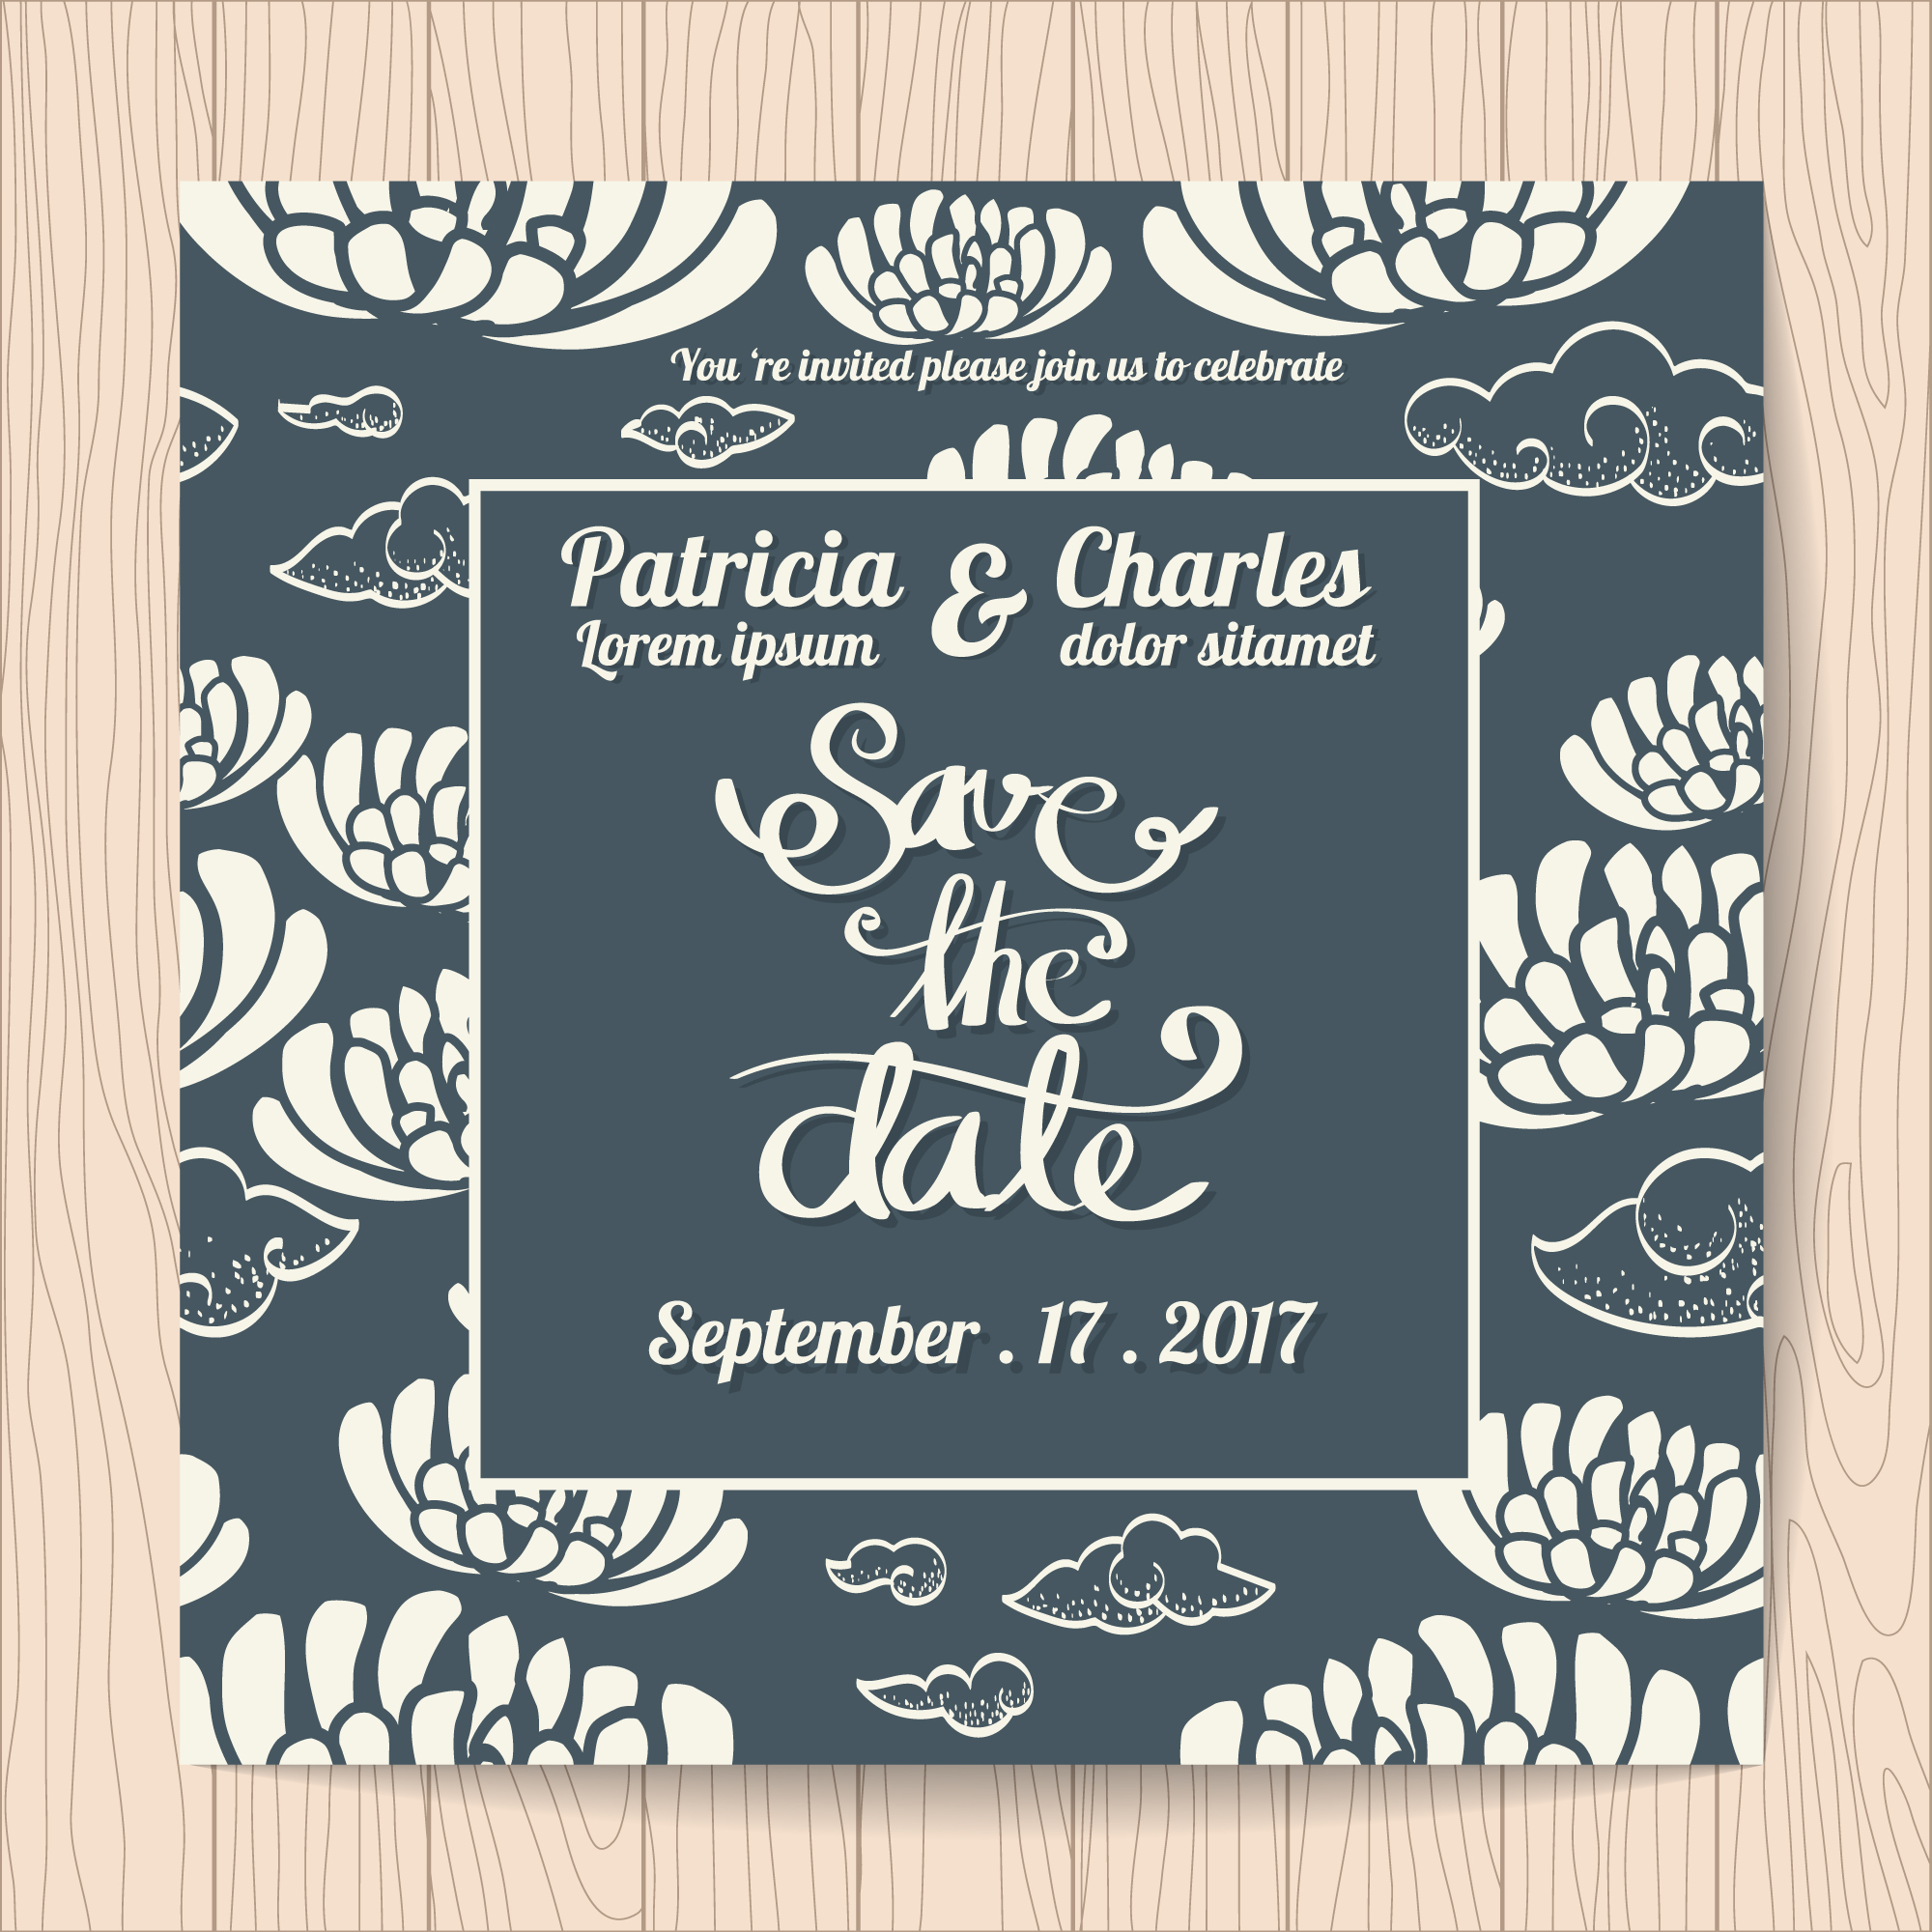 Wedding invitation with abstract background